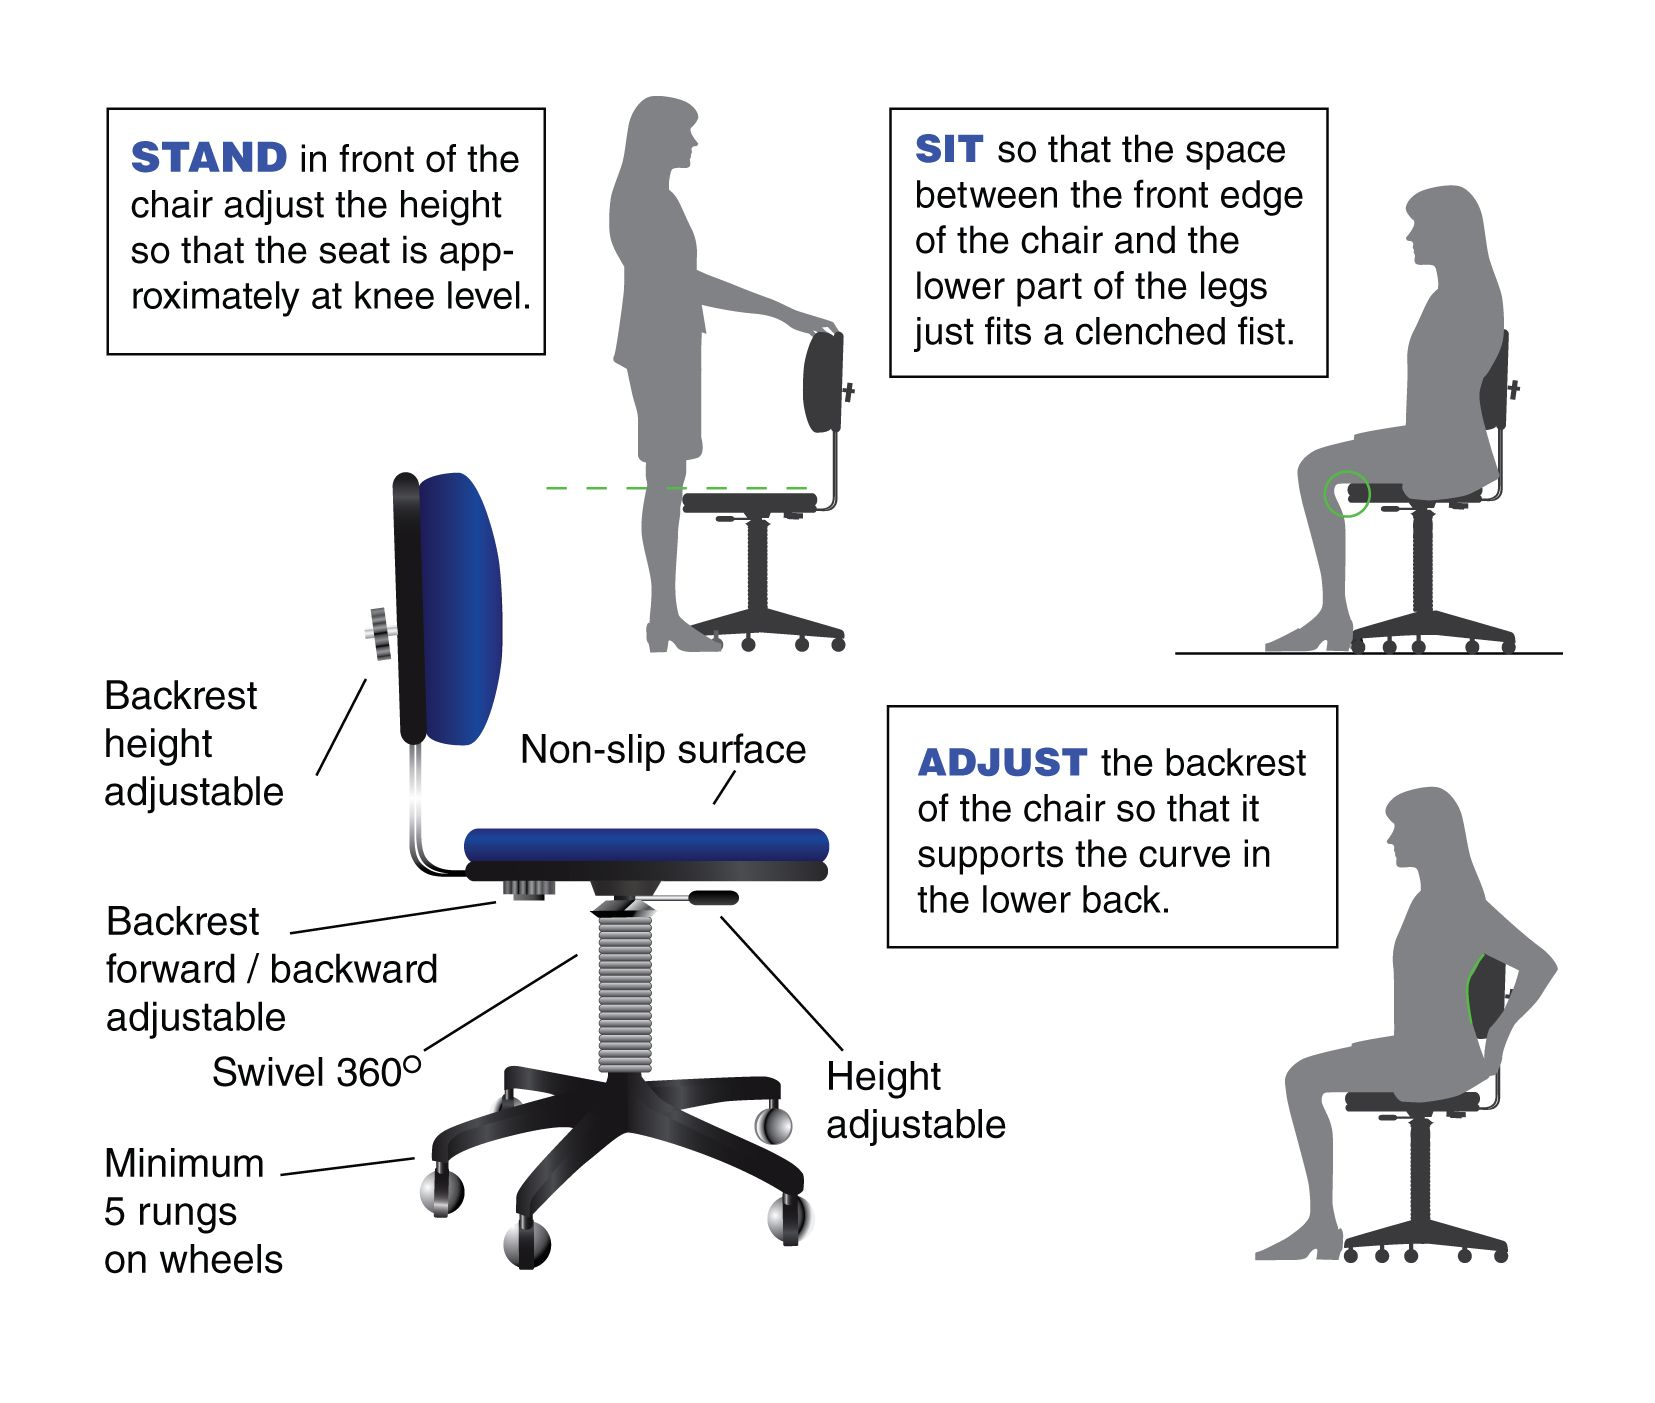 Home Office Design Tips To Stay Healthy: Ergonomics: How To Adjust Your Office Desk Chair. Avoid